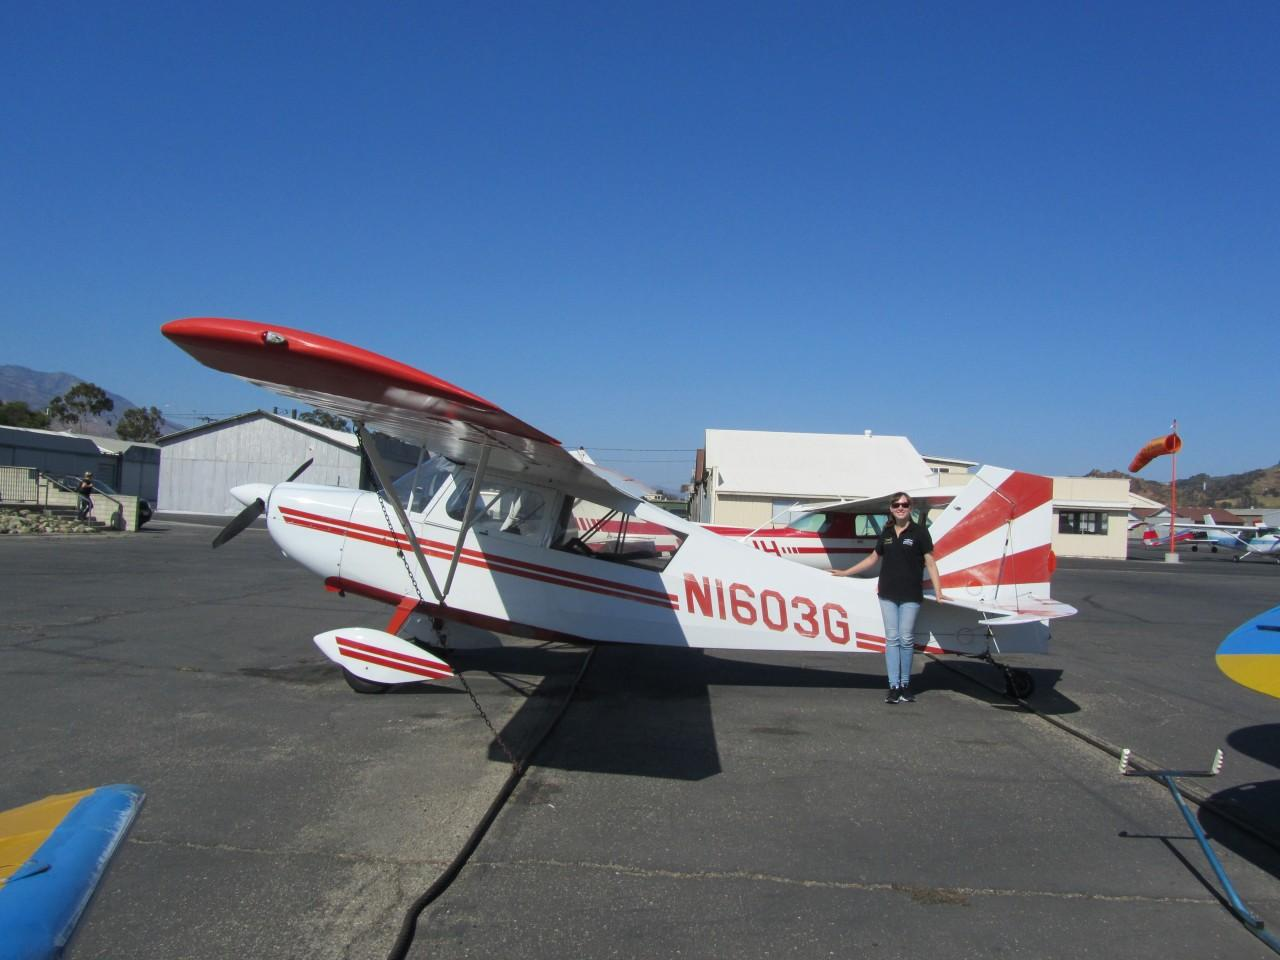 Tailwheel Endorsement - Emmalea McNay